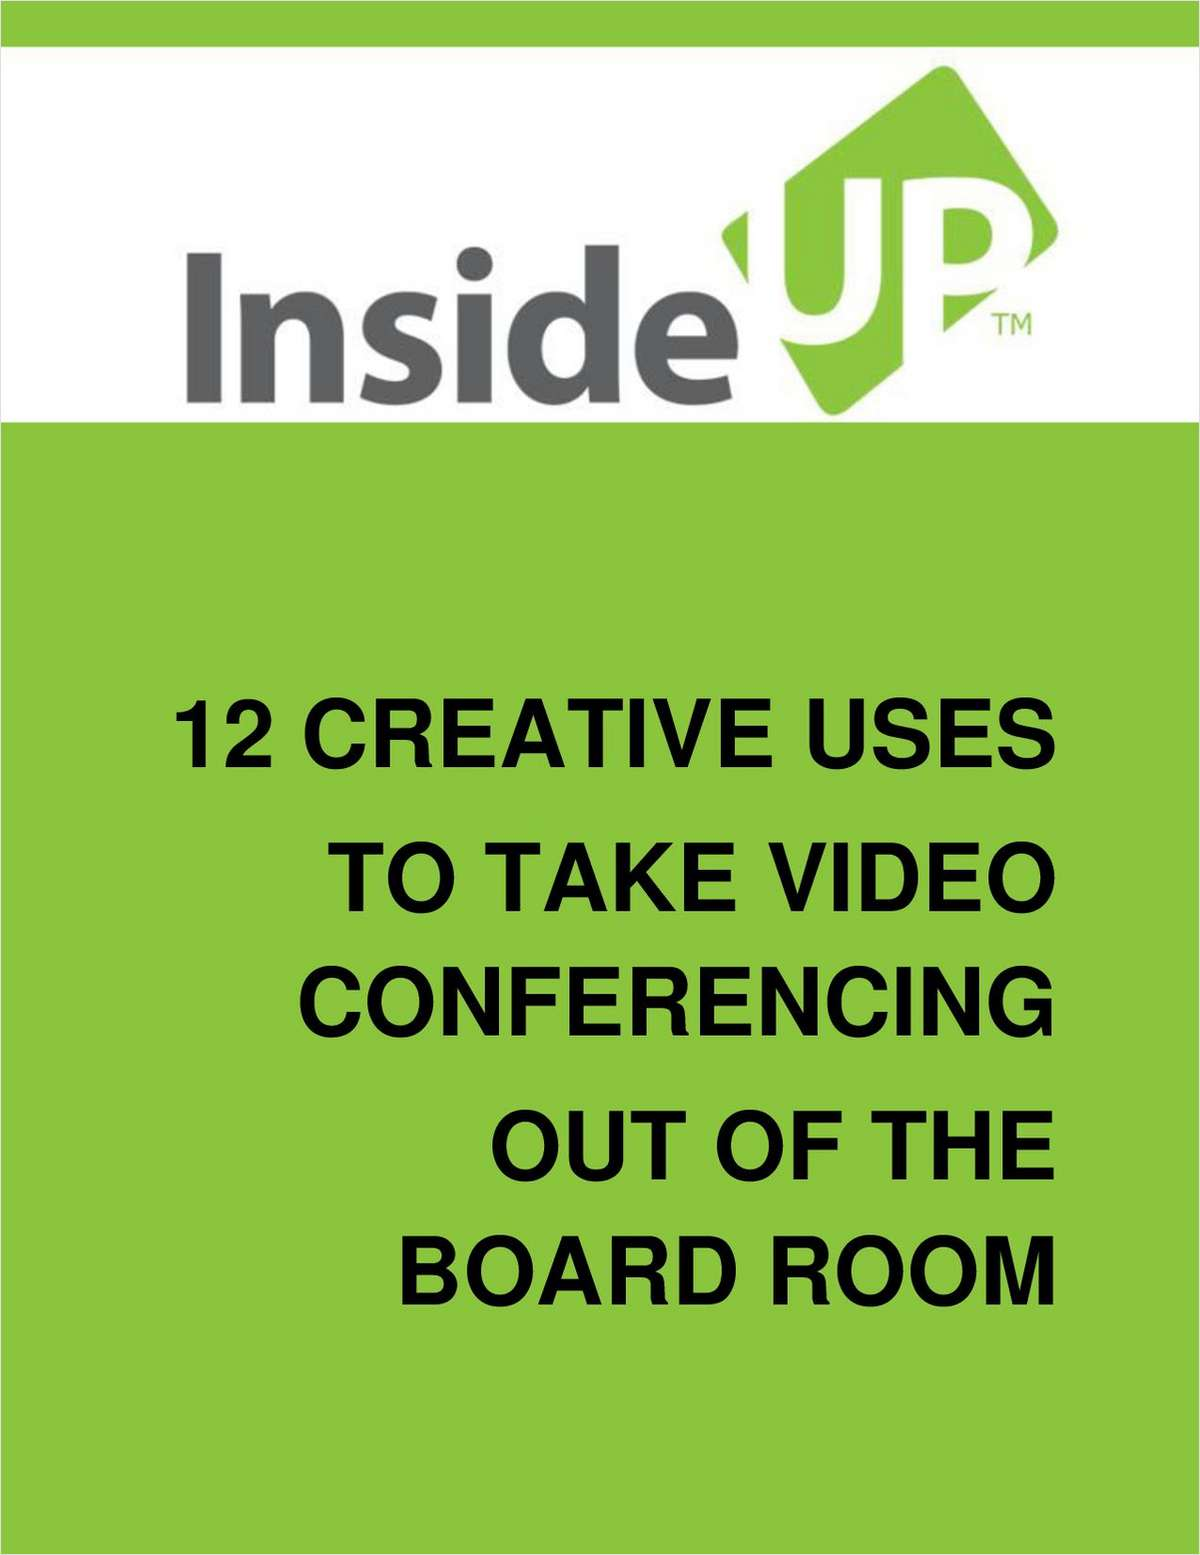 12 Creative Uses to Take Video Conferencing Out of the Boardroom